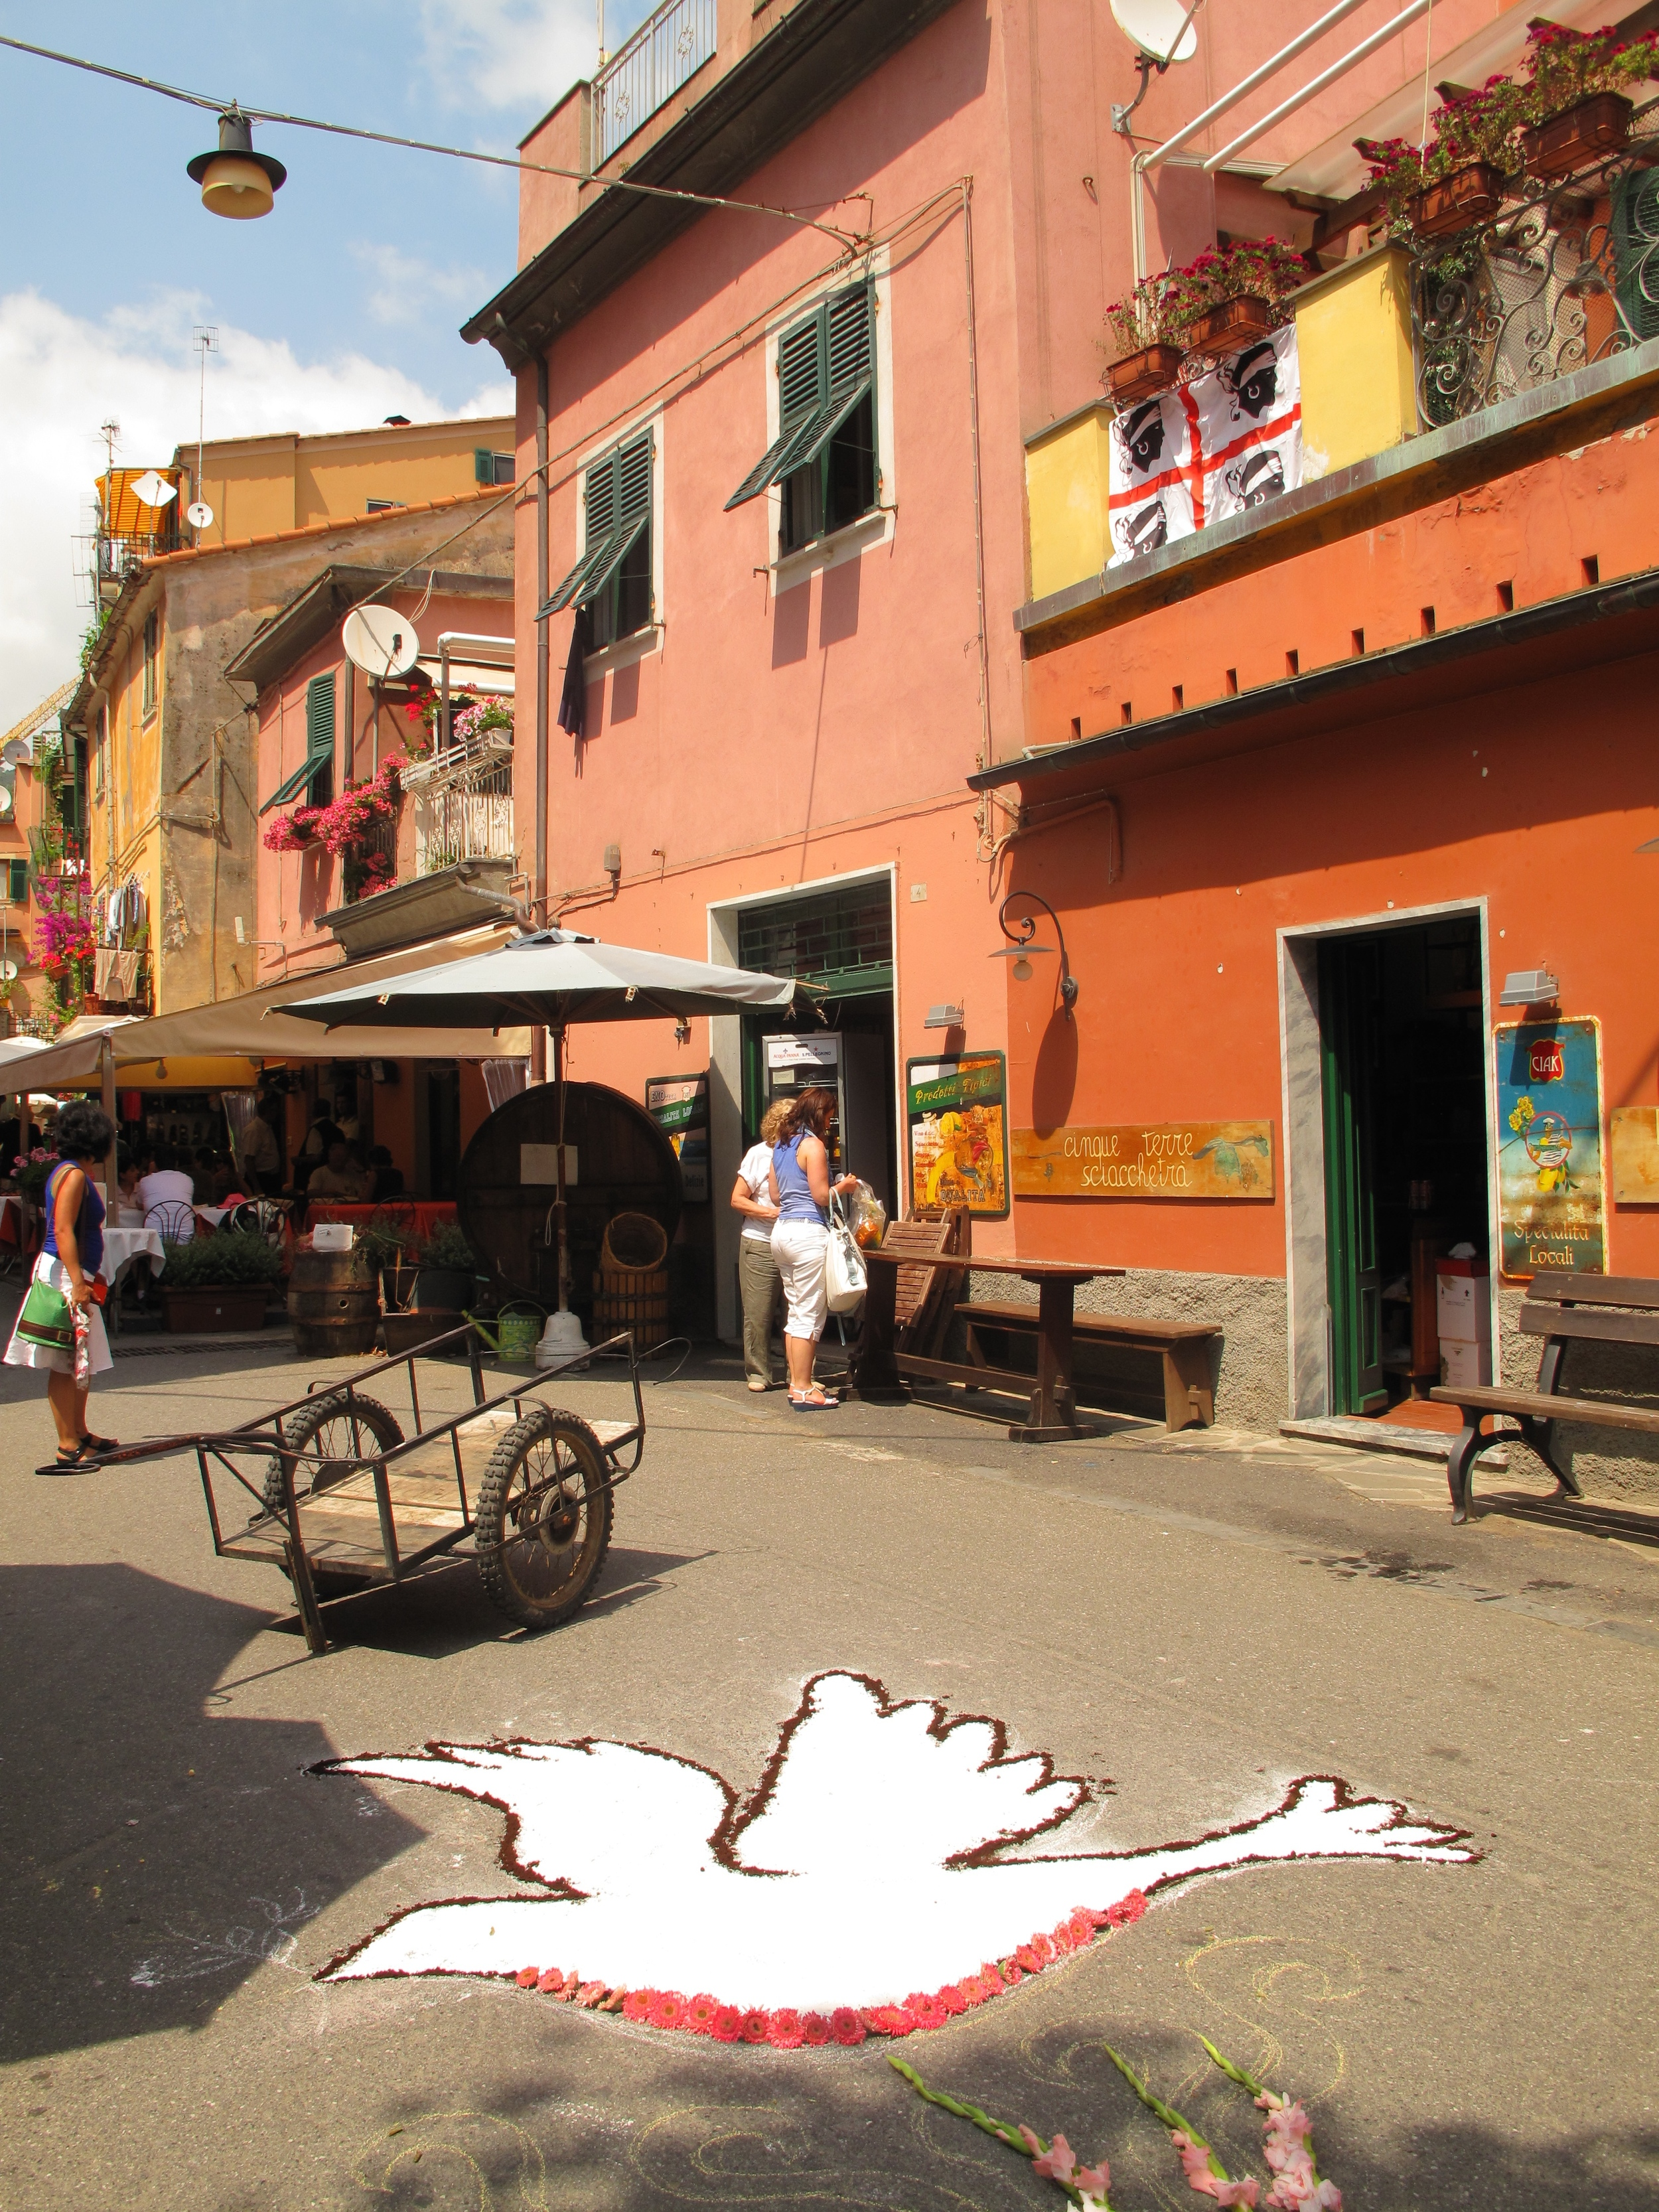 Infiorata flower shows and pictures made of flowers - a dove made of flowers